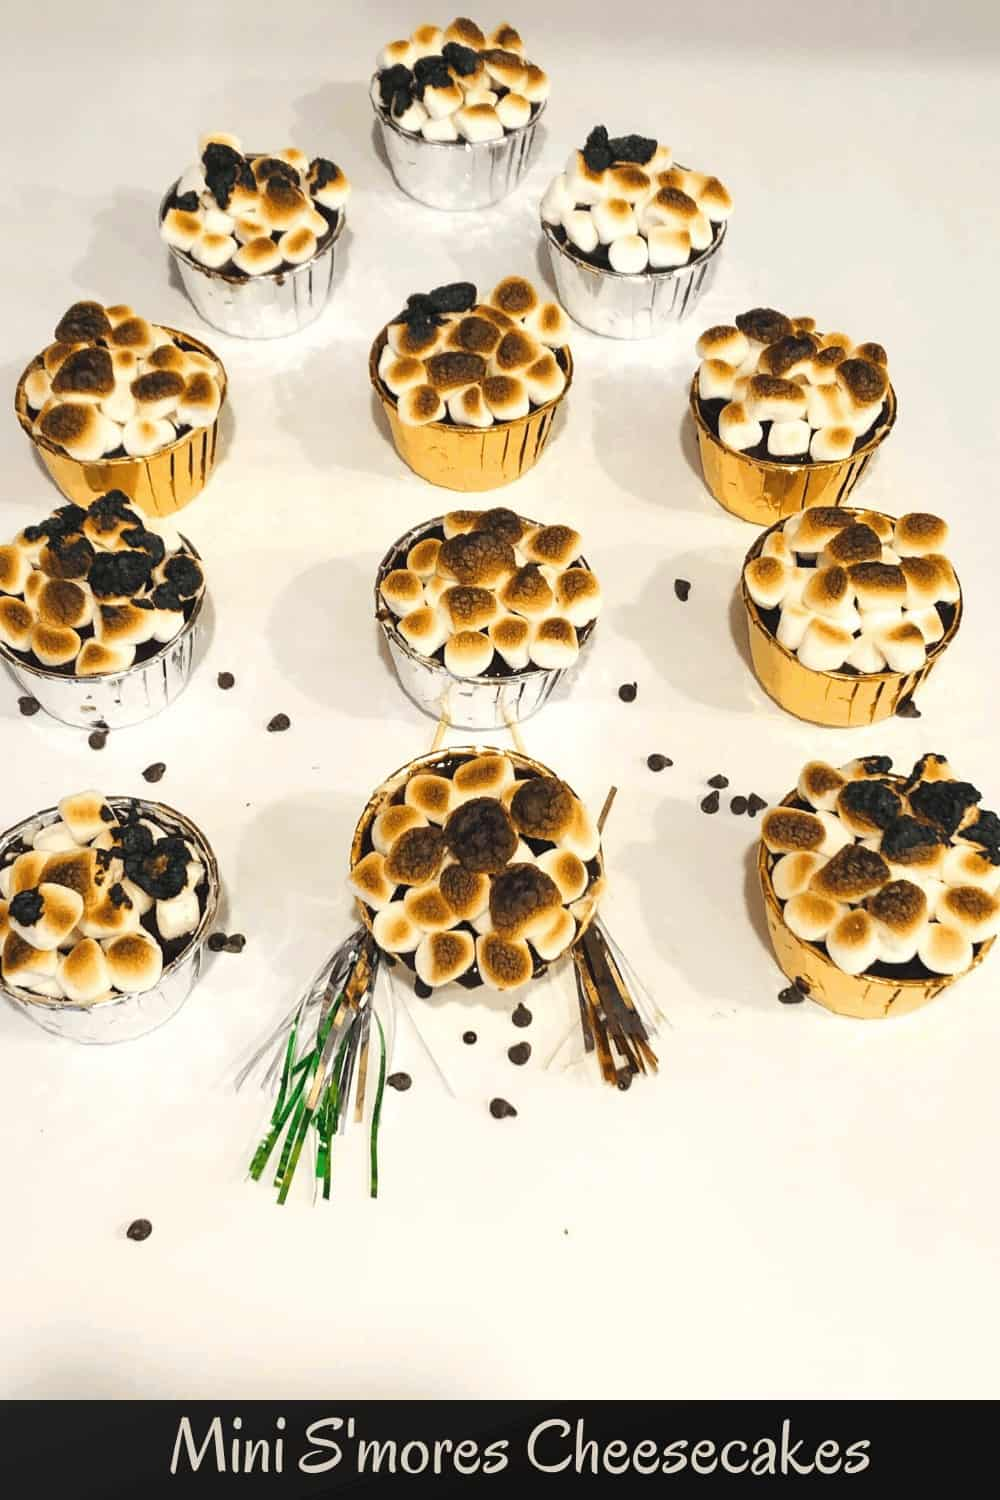 may mini s'more cheesecakes